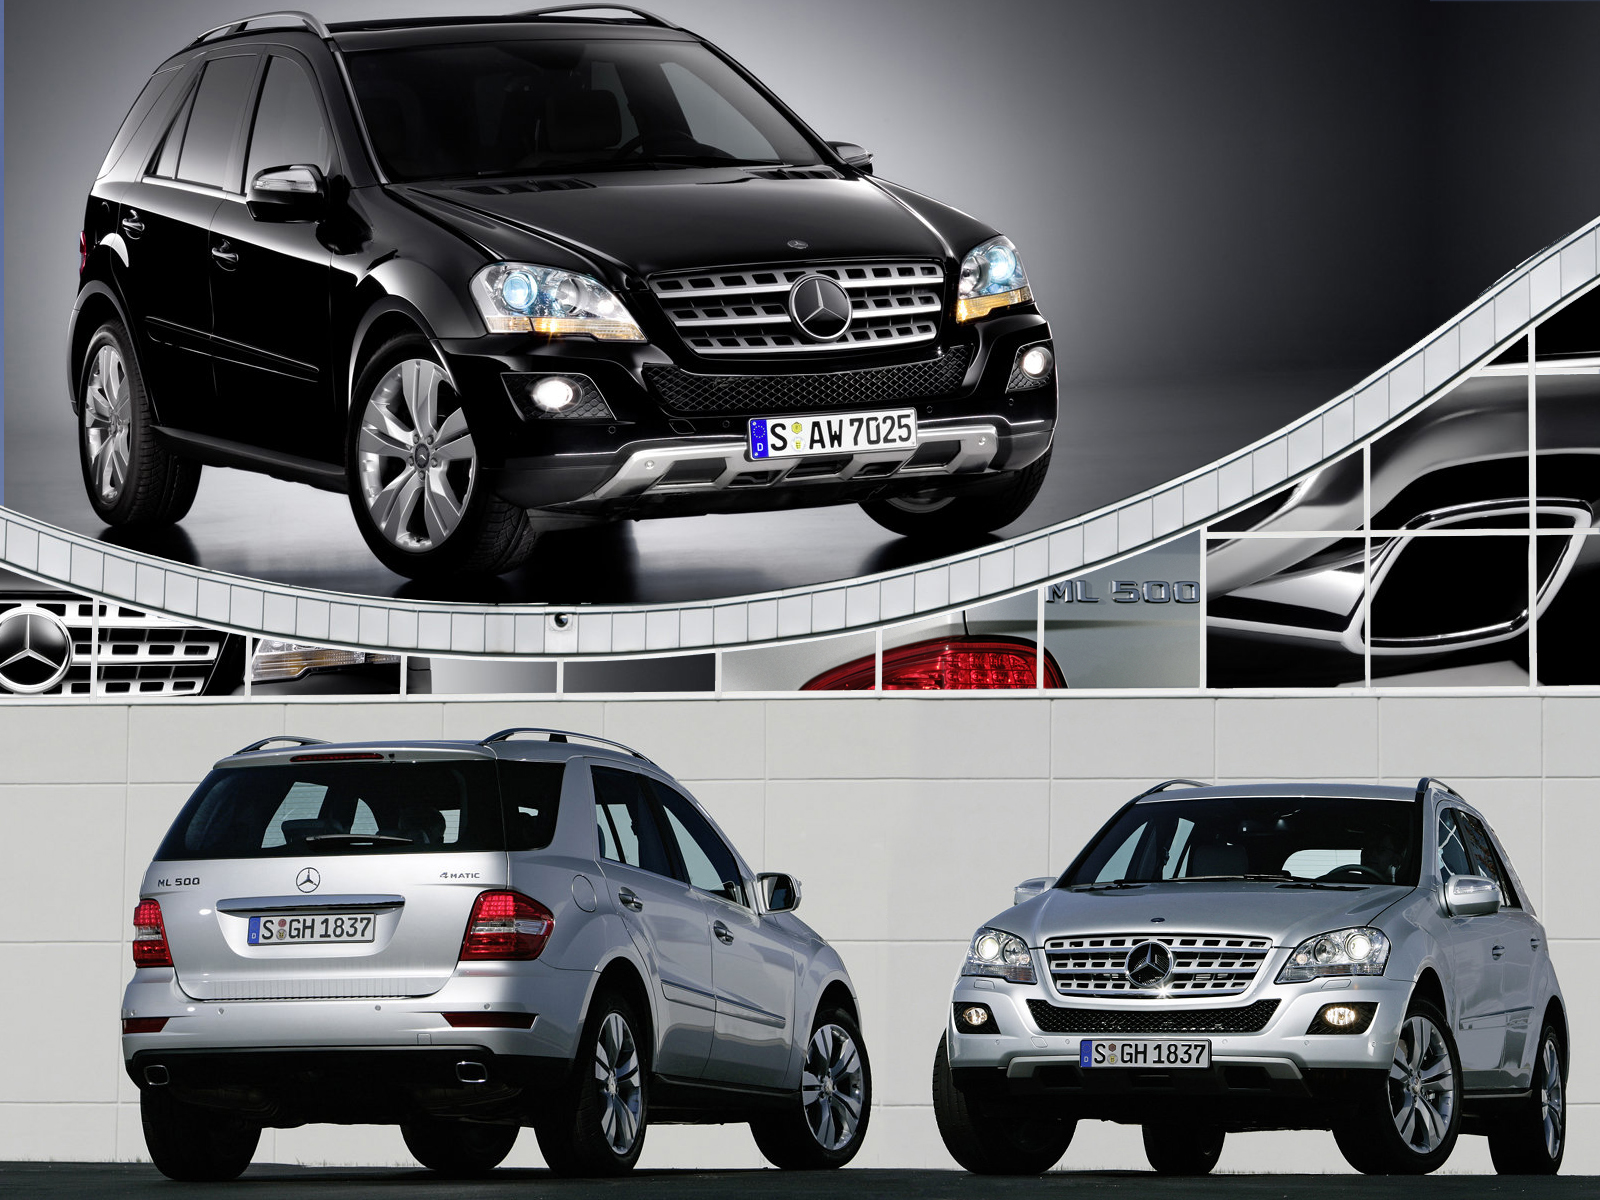 2011 2012 mercedes benz m class price in india 2011 for Mercedes benz ml class 350 cdi price in india